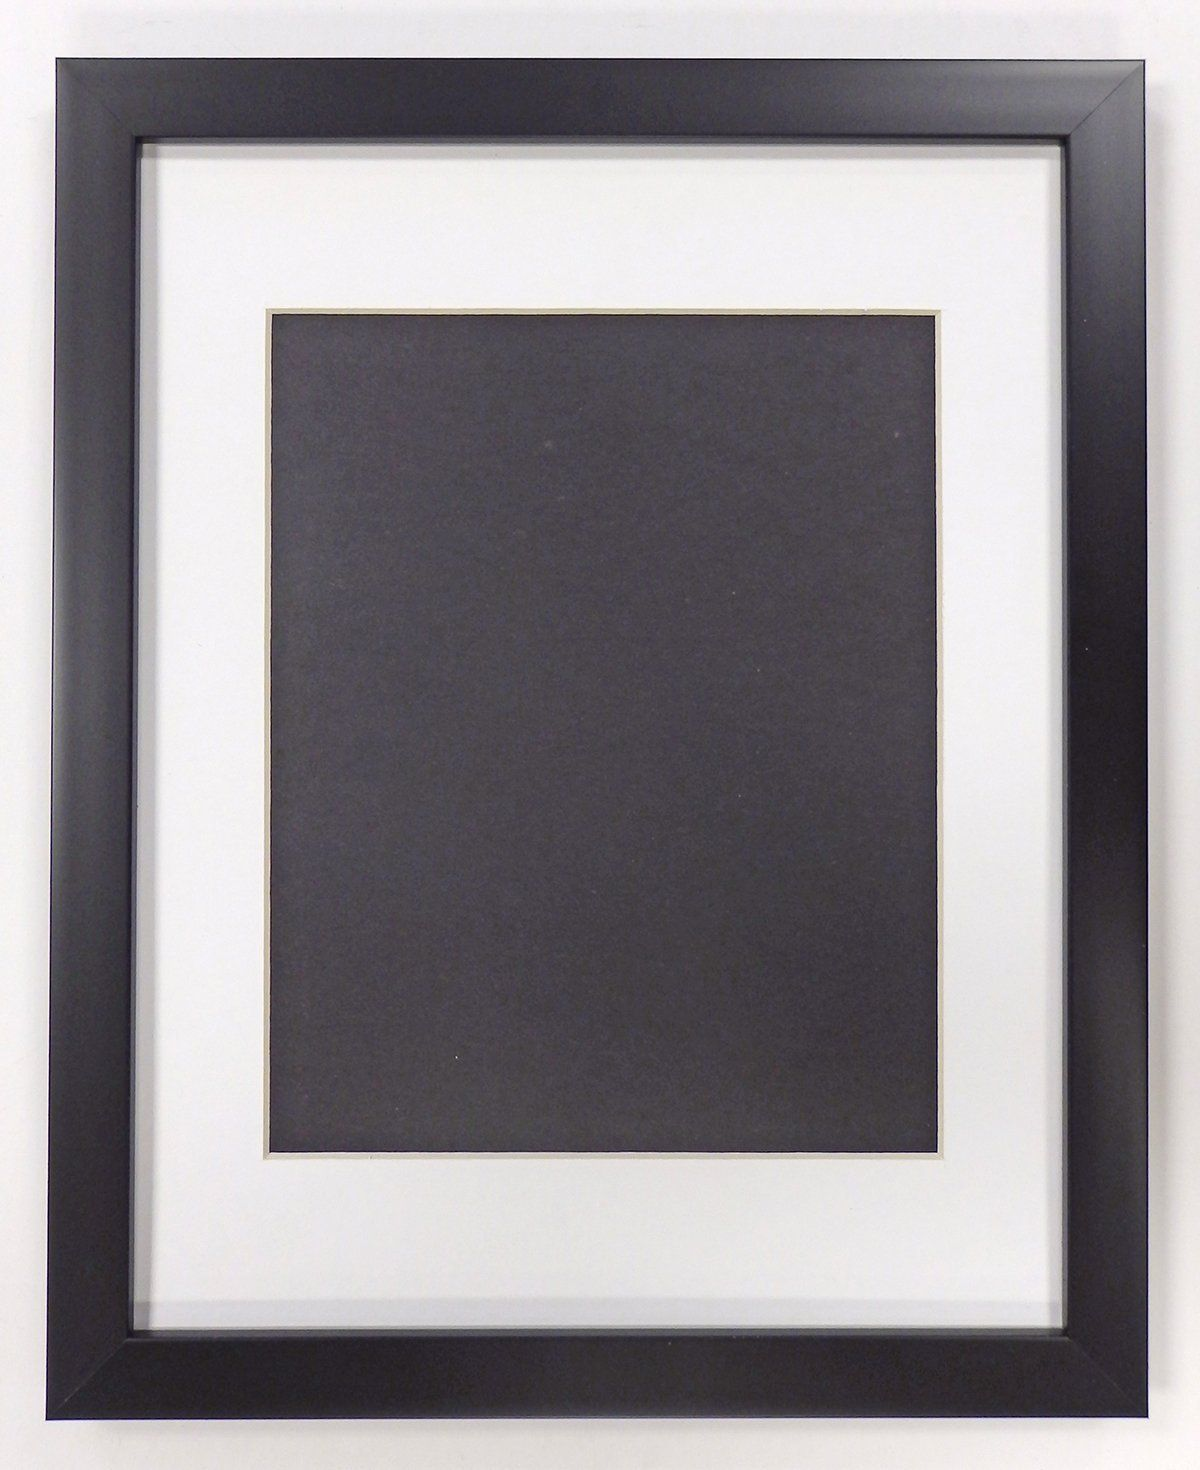 Best Value 11x14 Black Picture Frame Made To Display Pictures